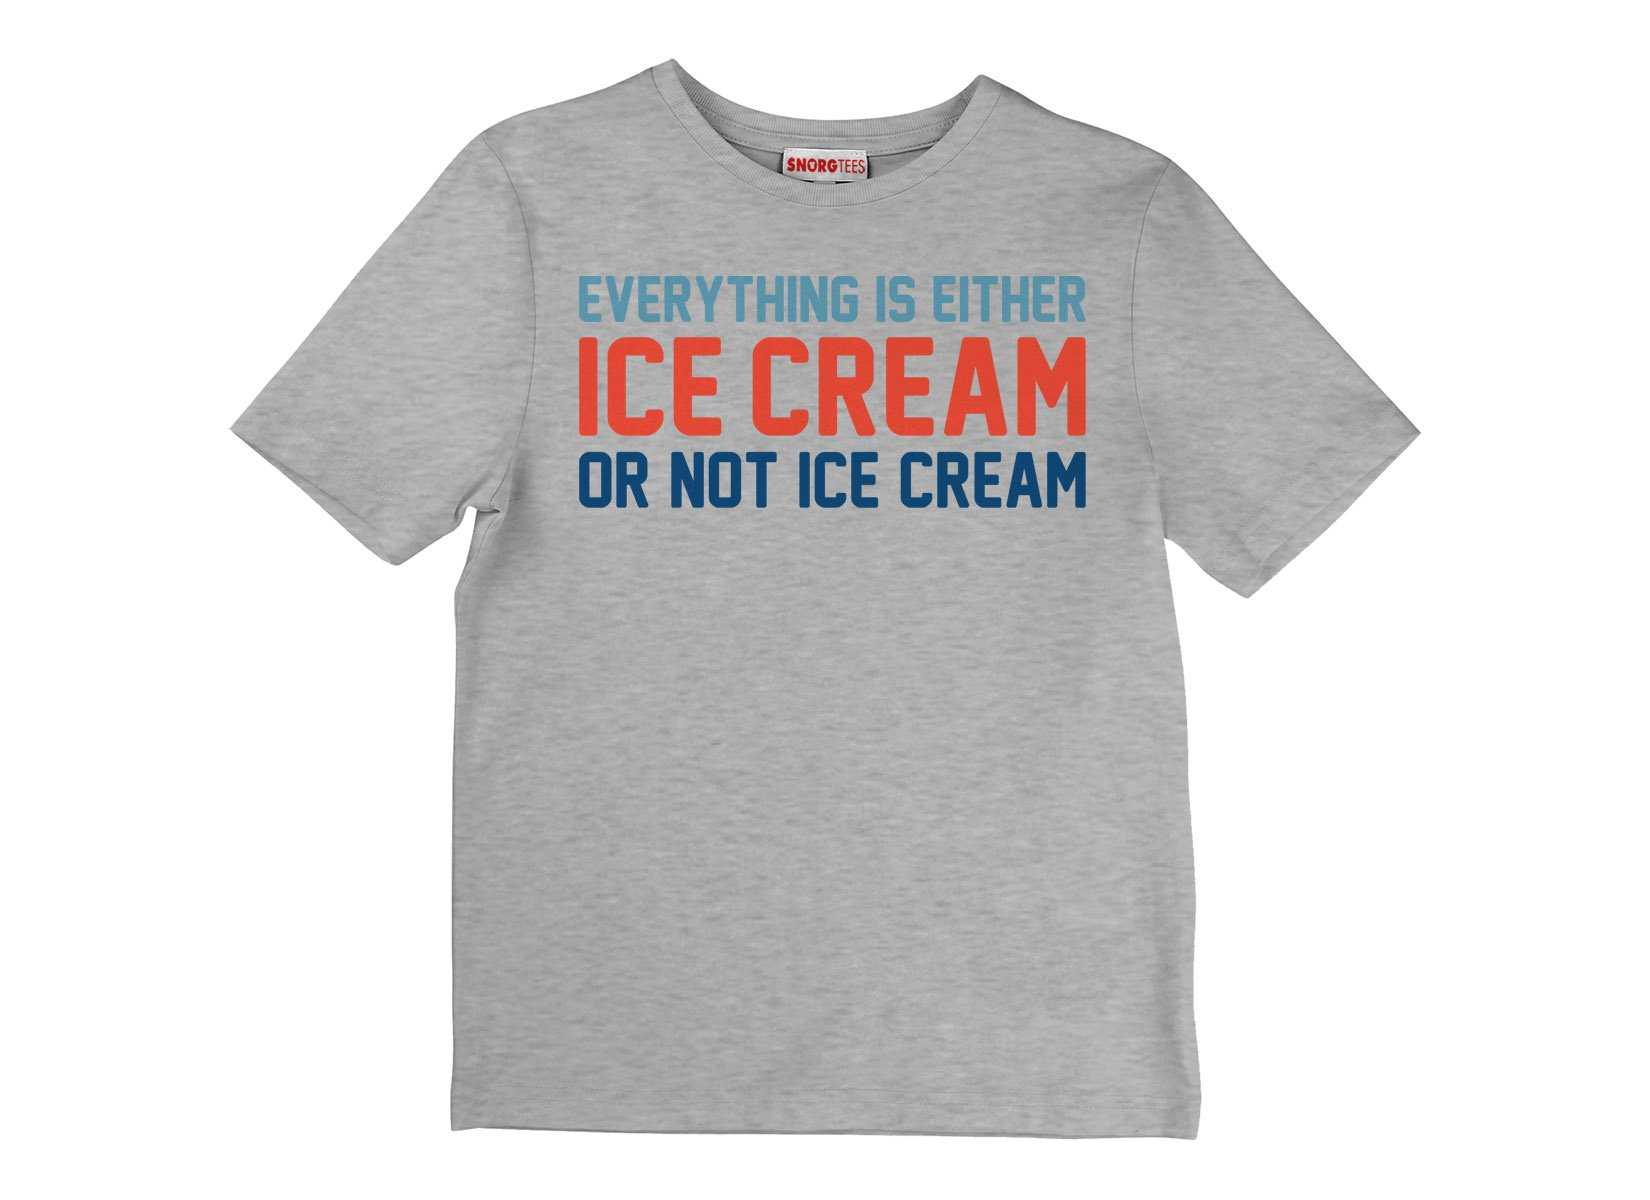 Everything Is Ice Cream Or Not Ice Cream on Kids T-Shirt